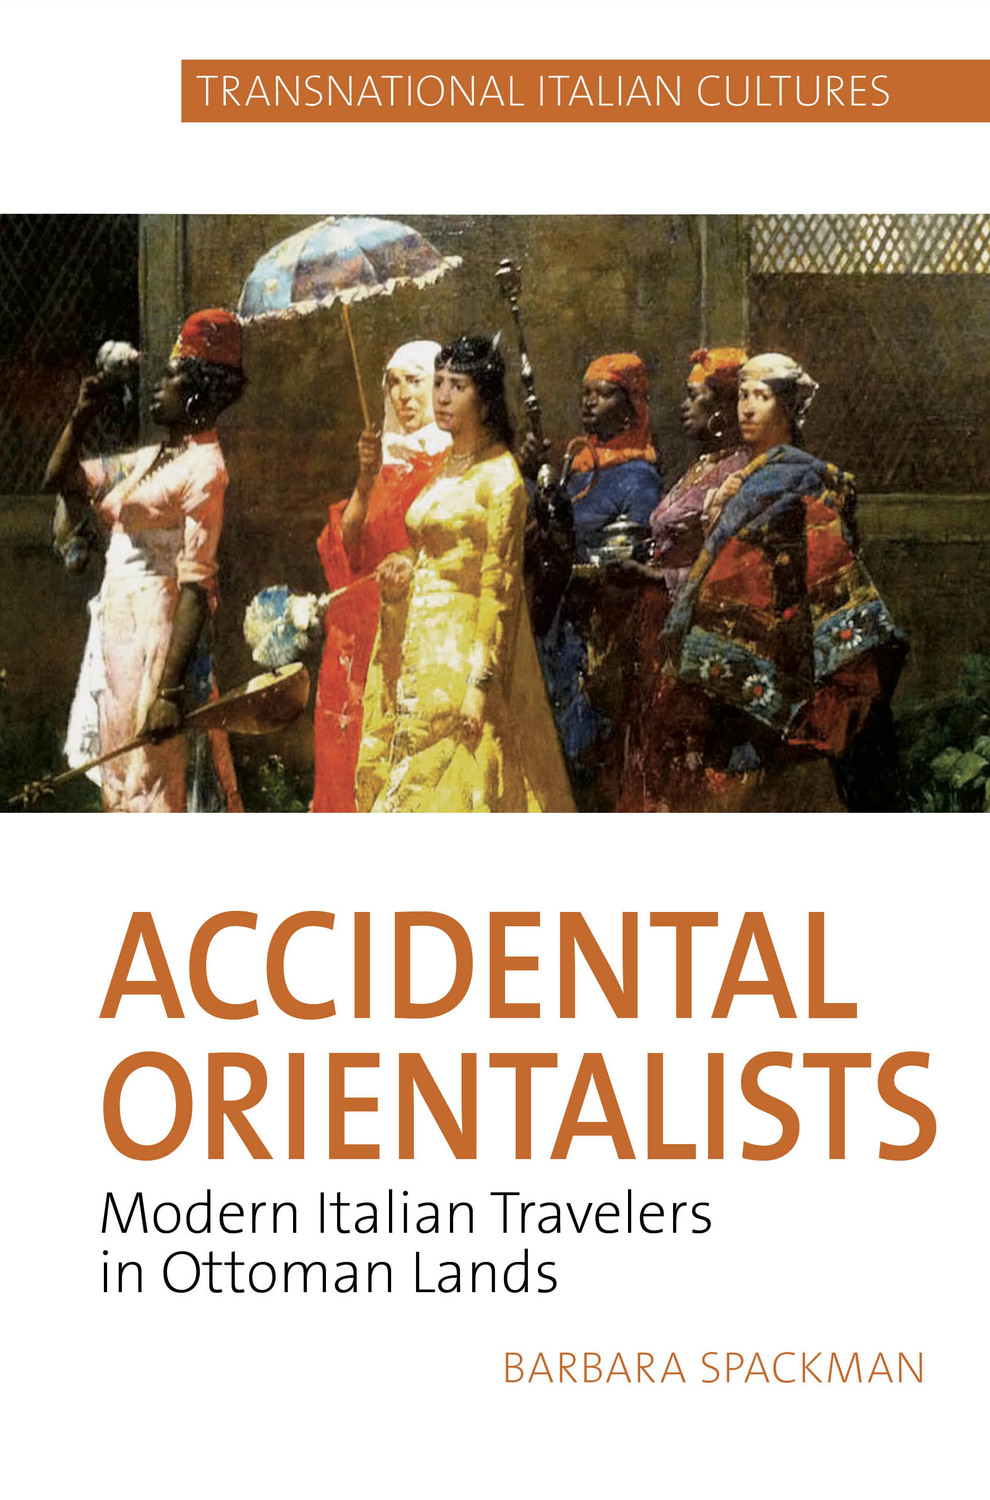 Accidental Orientalists